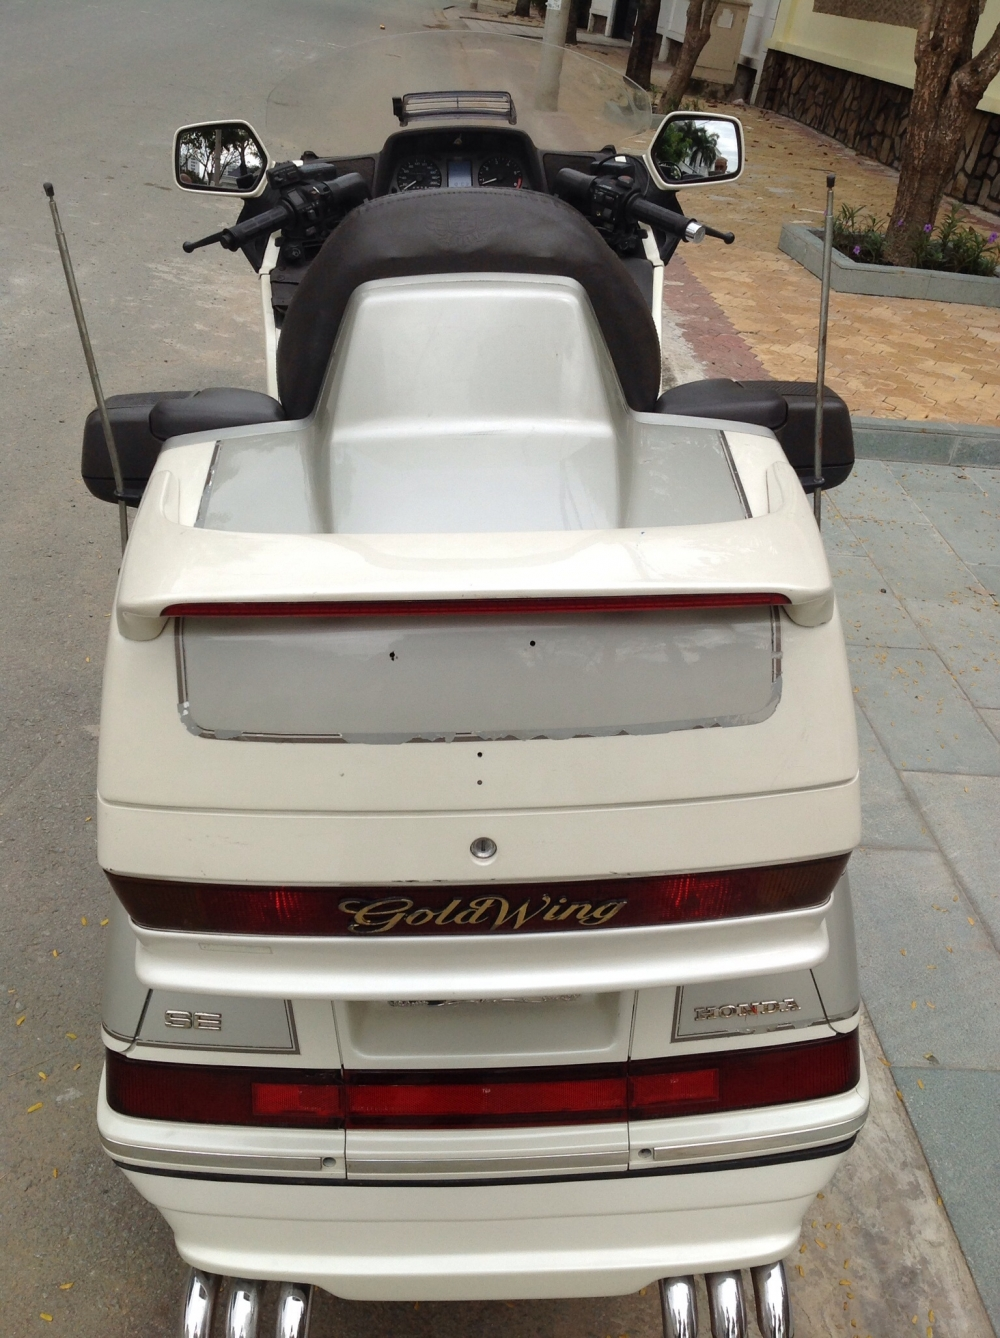 Ban honda goldwing gia tot - 8